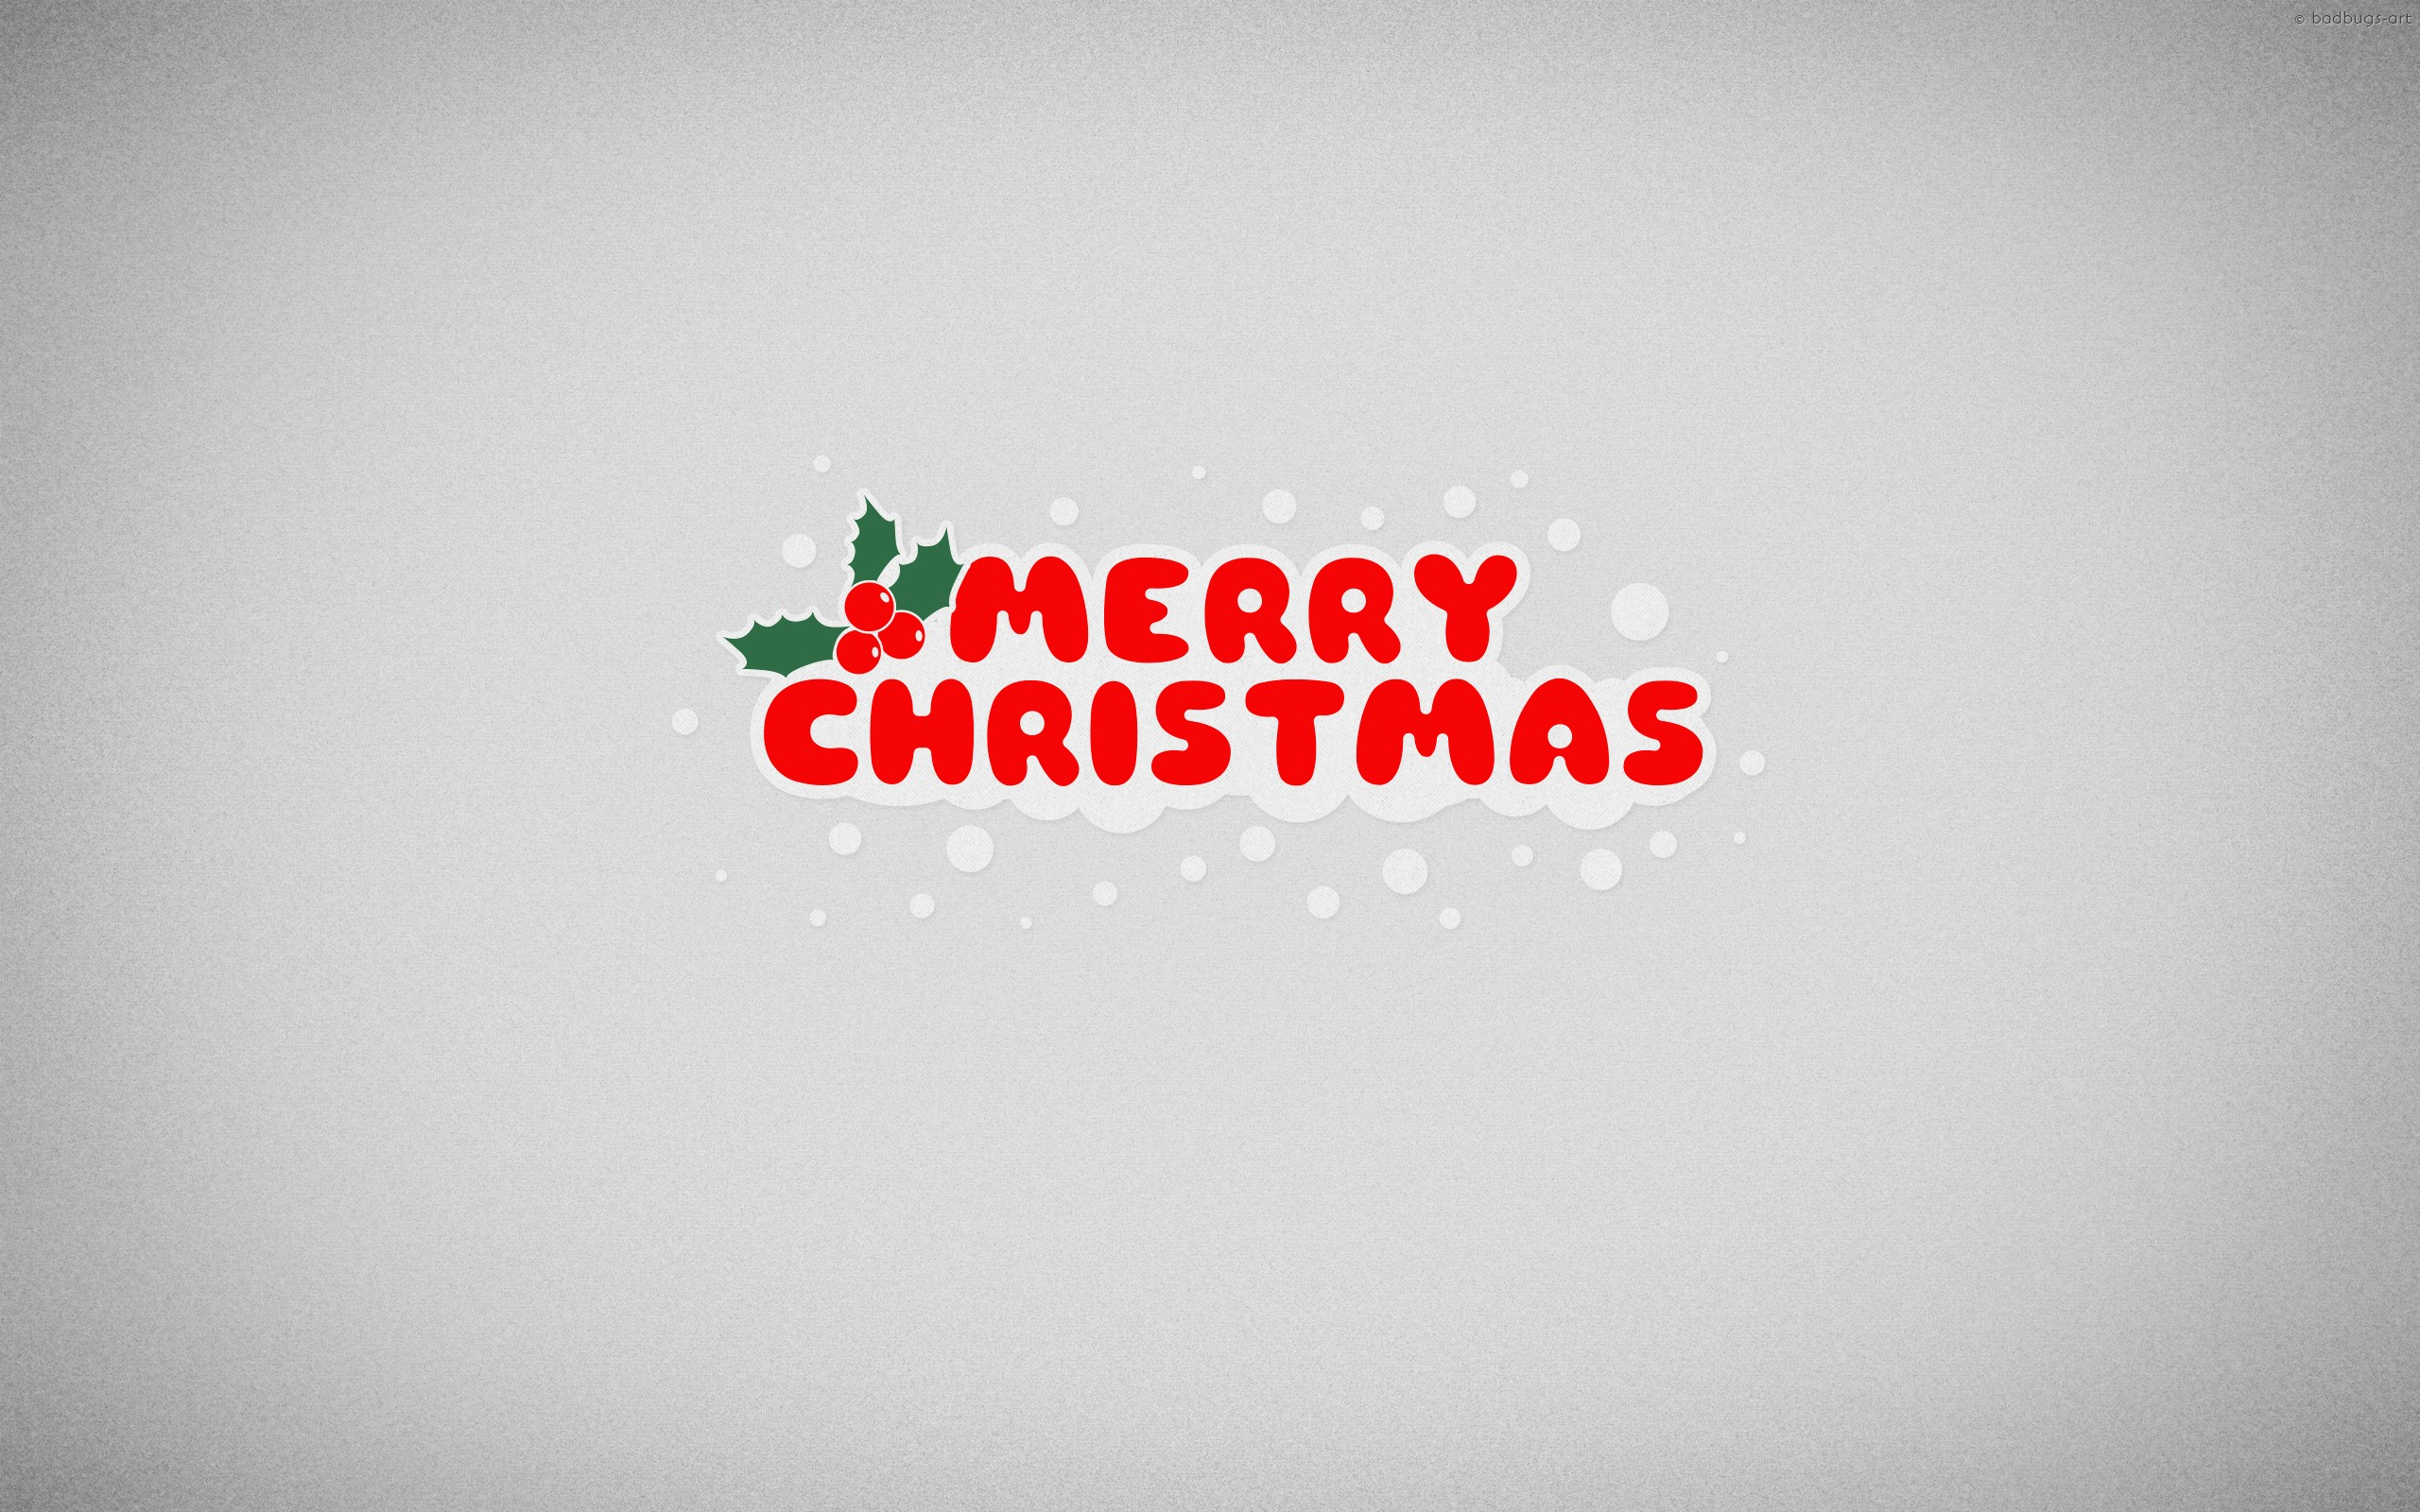 Merry Christmas Wallpaper Download Free Awesome Hd Wallpapers